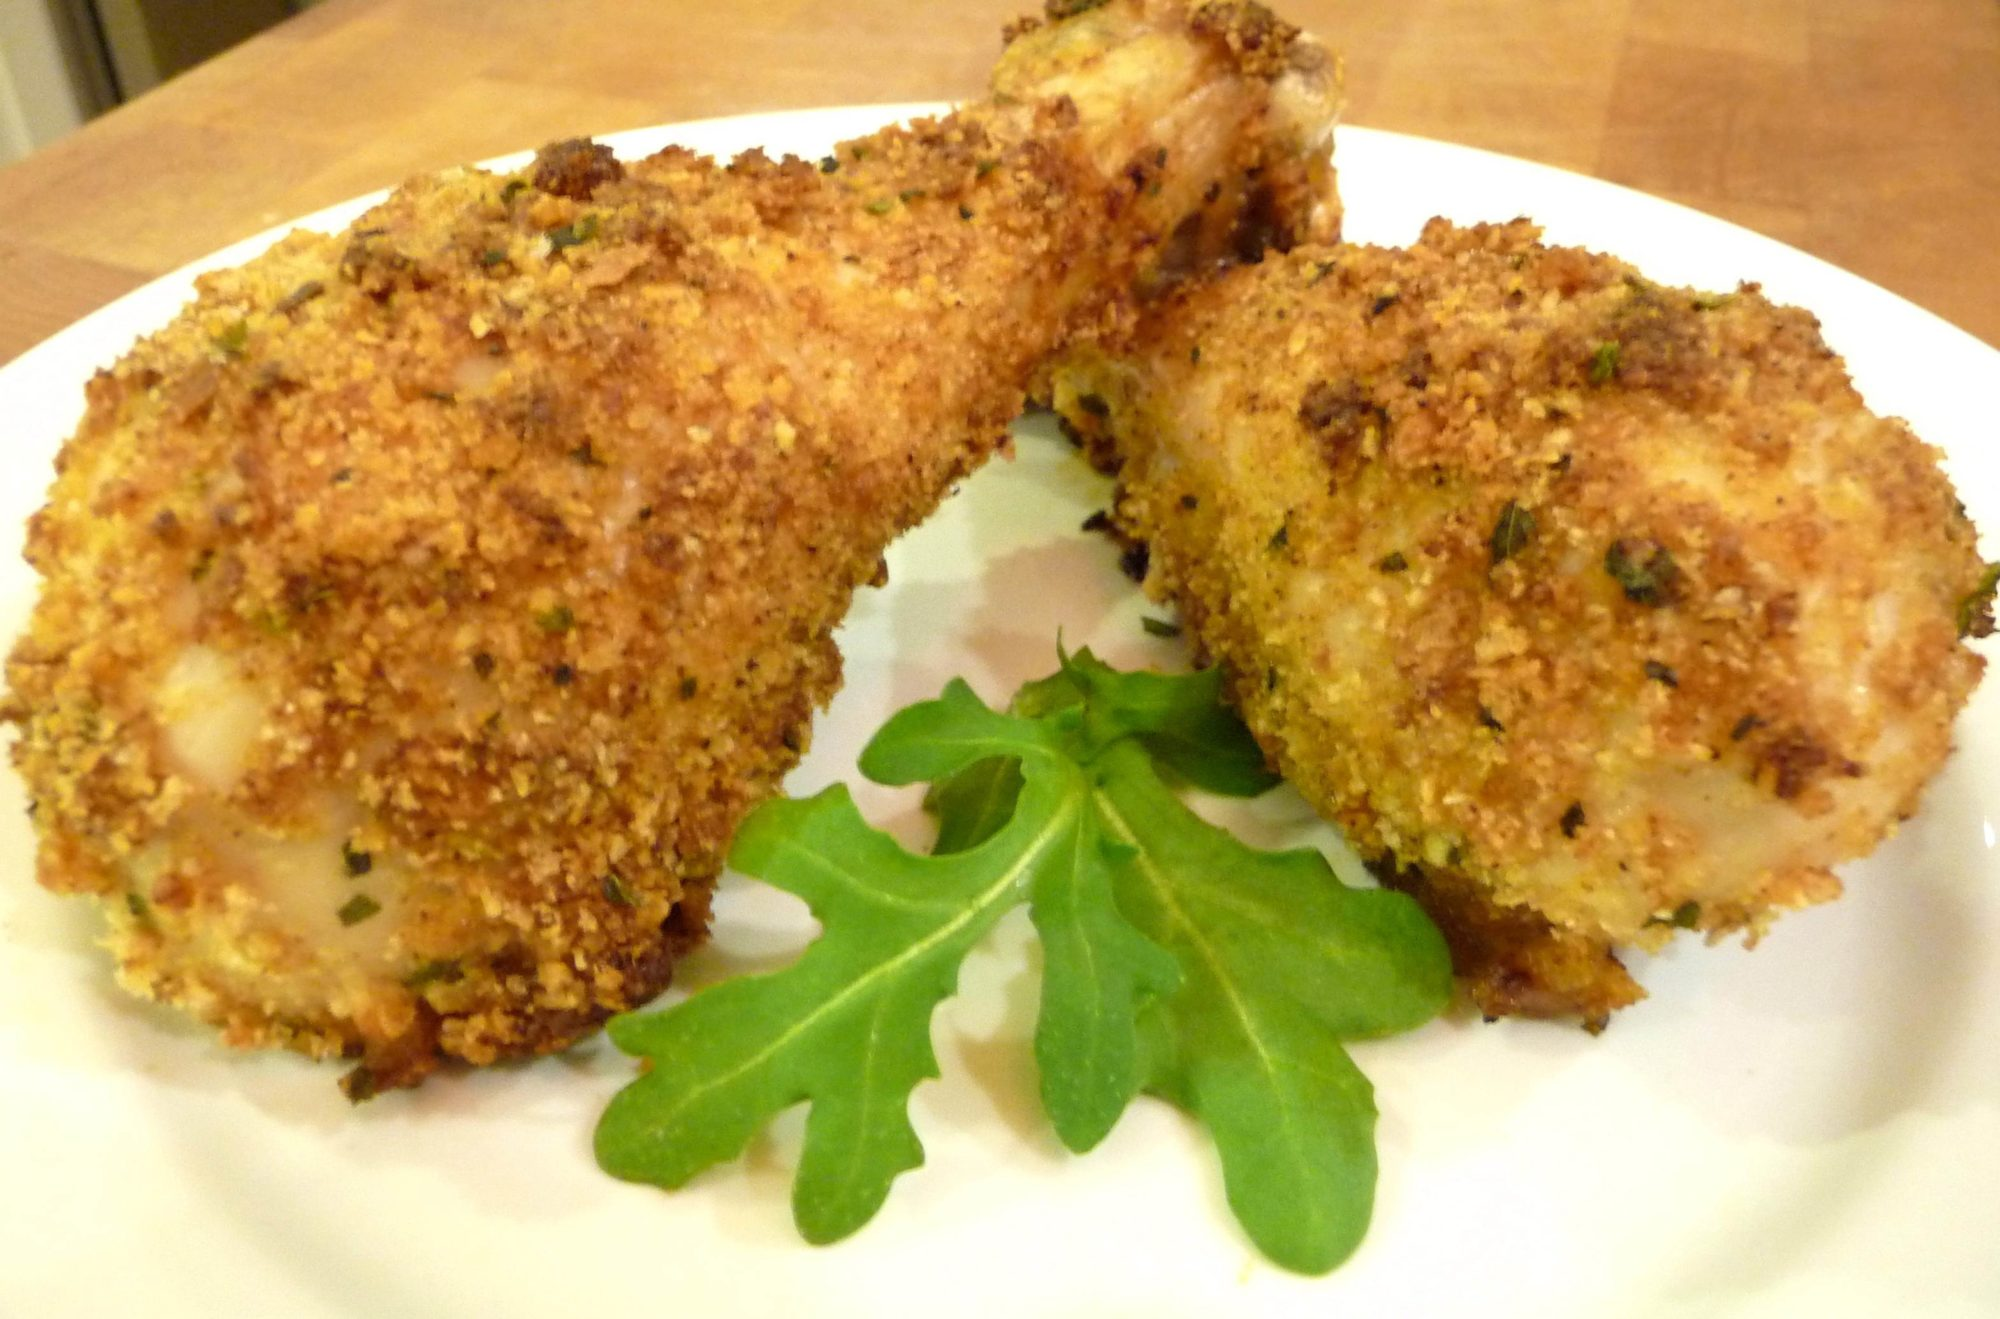 Oven Baked Fried Chicken (GF Option)